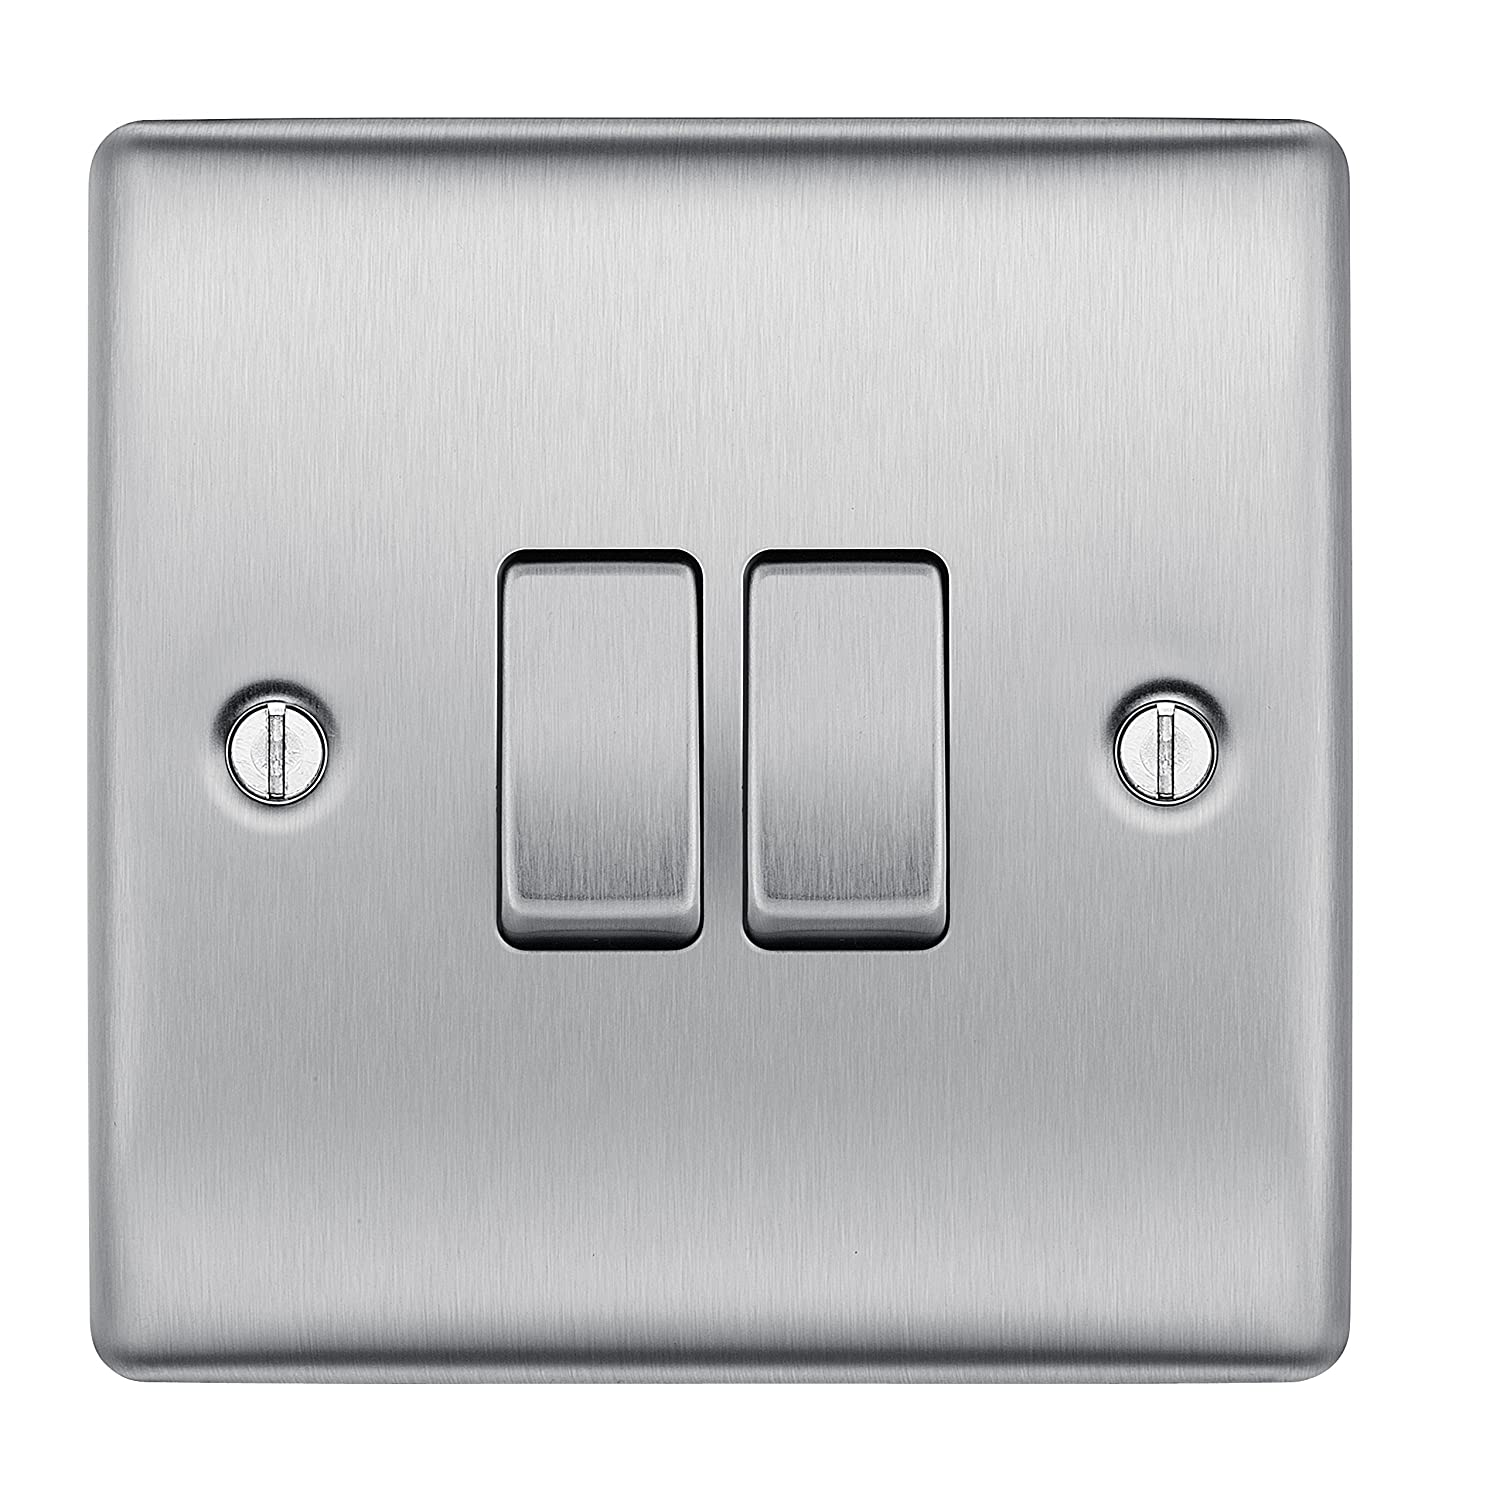 bkgd home light rf radiant la products switch wall automation in white almond legrand remote